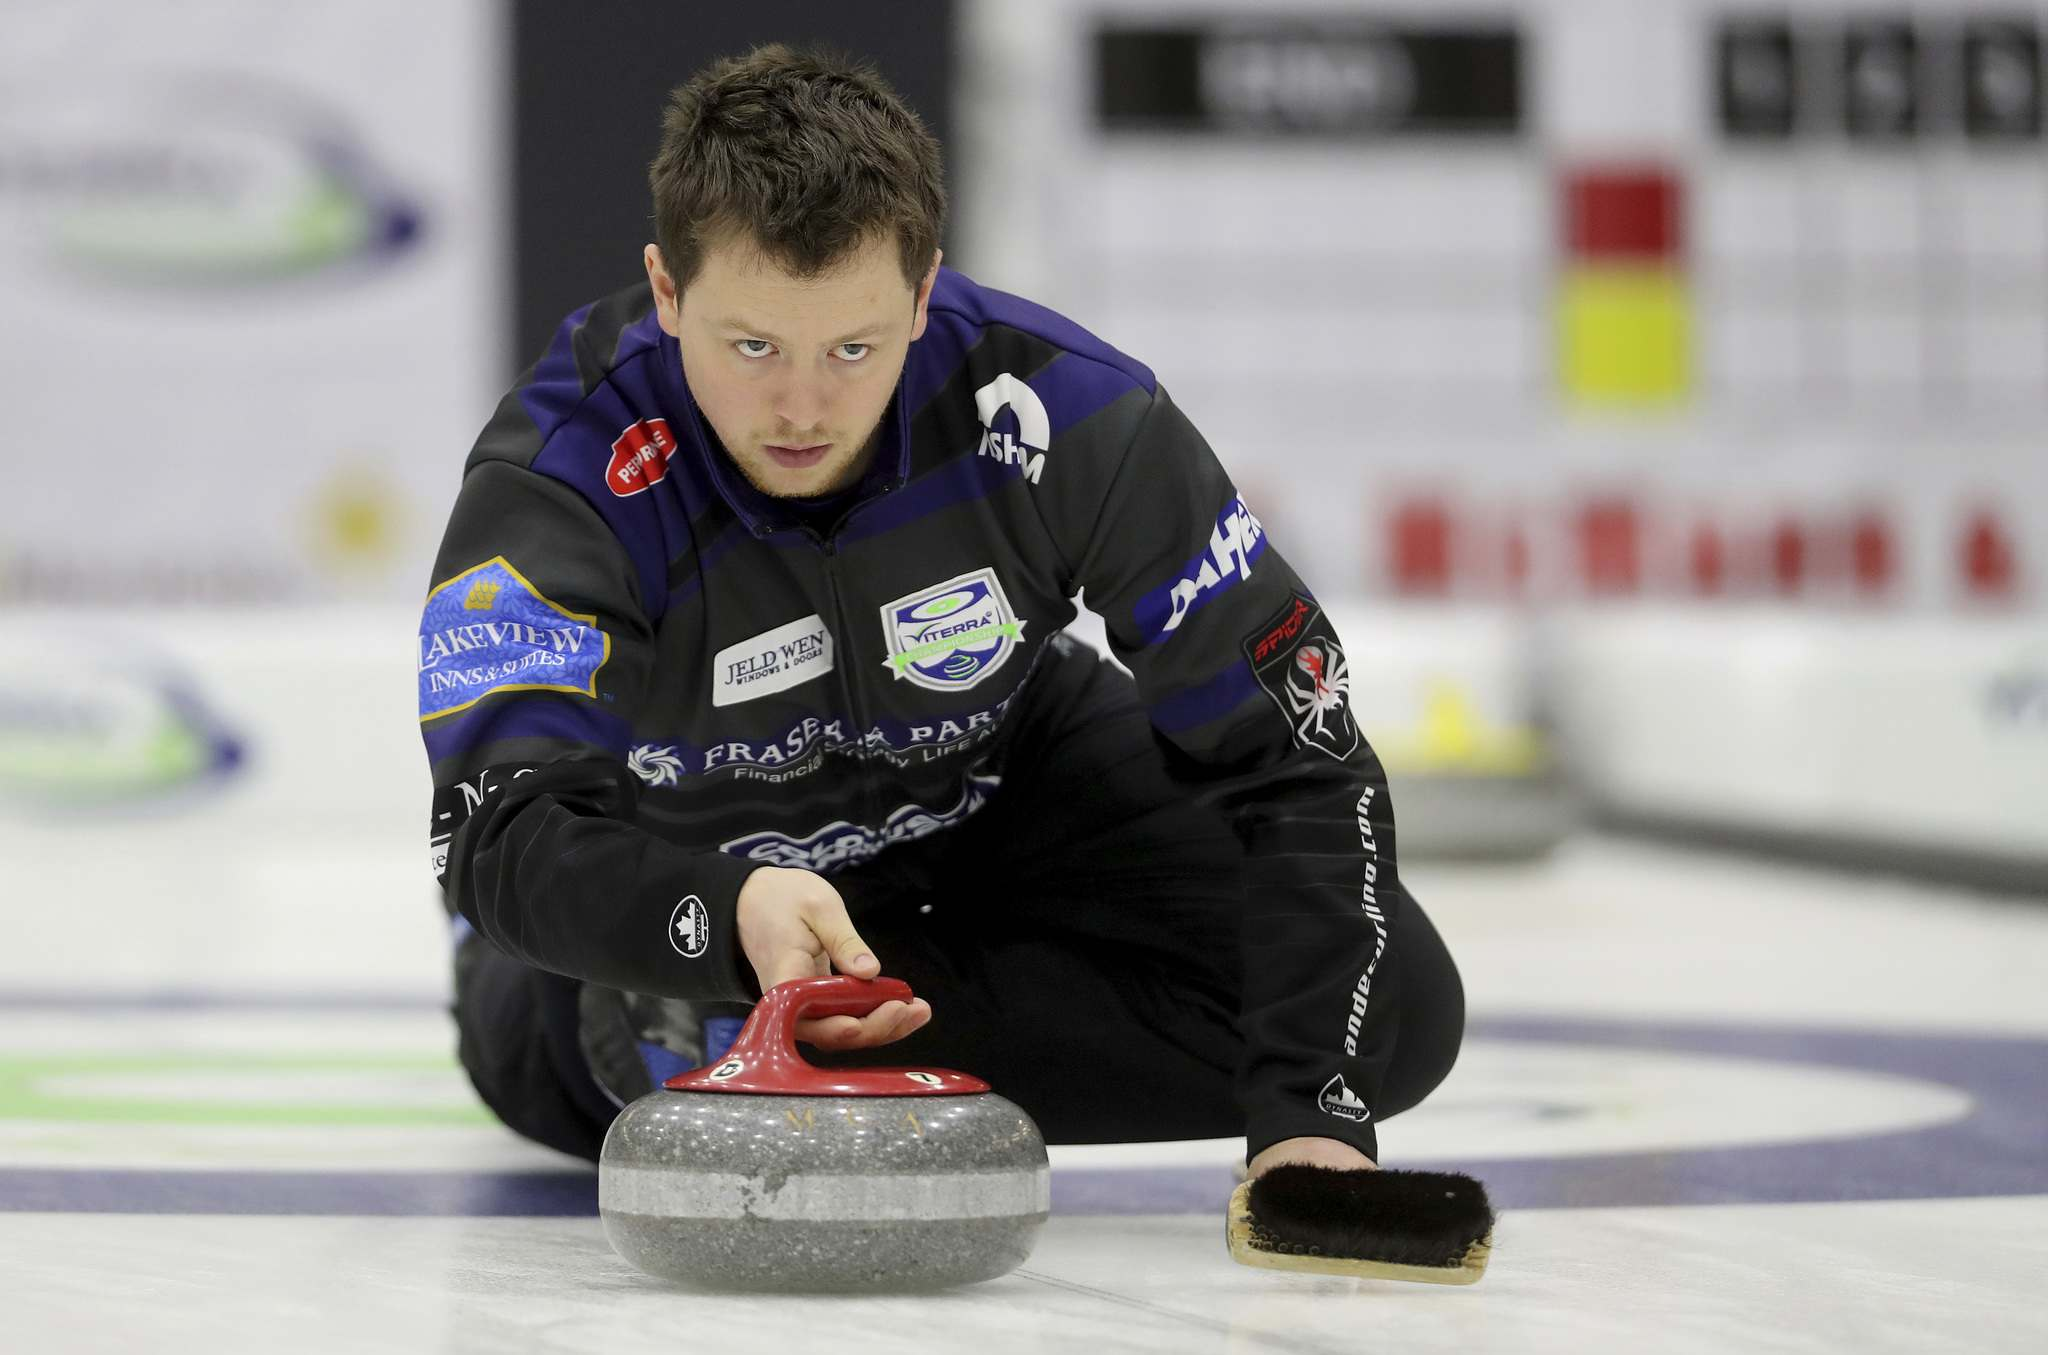 Jason Gunnlaugson&#39;s Winnipeg team has a good chance to win this season&#39;s provincials. (Trevor Hagan / Winnipeg Free Press files)</p>